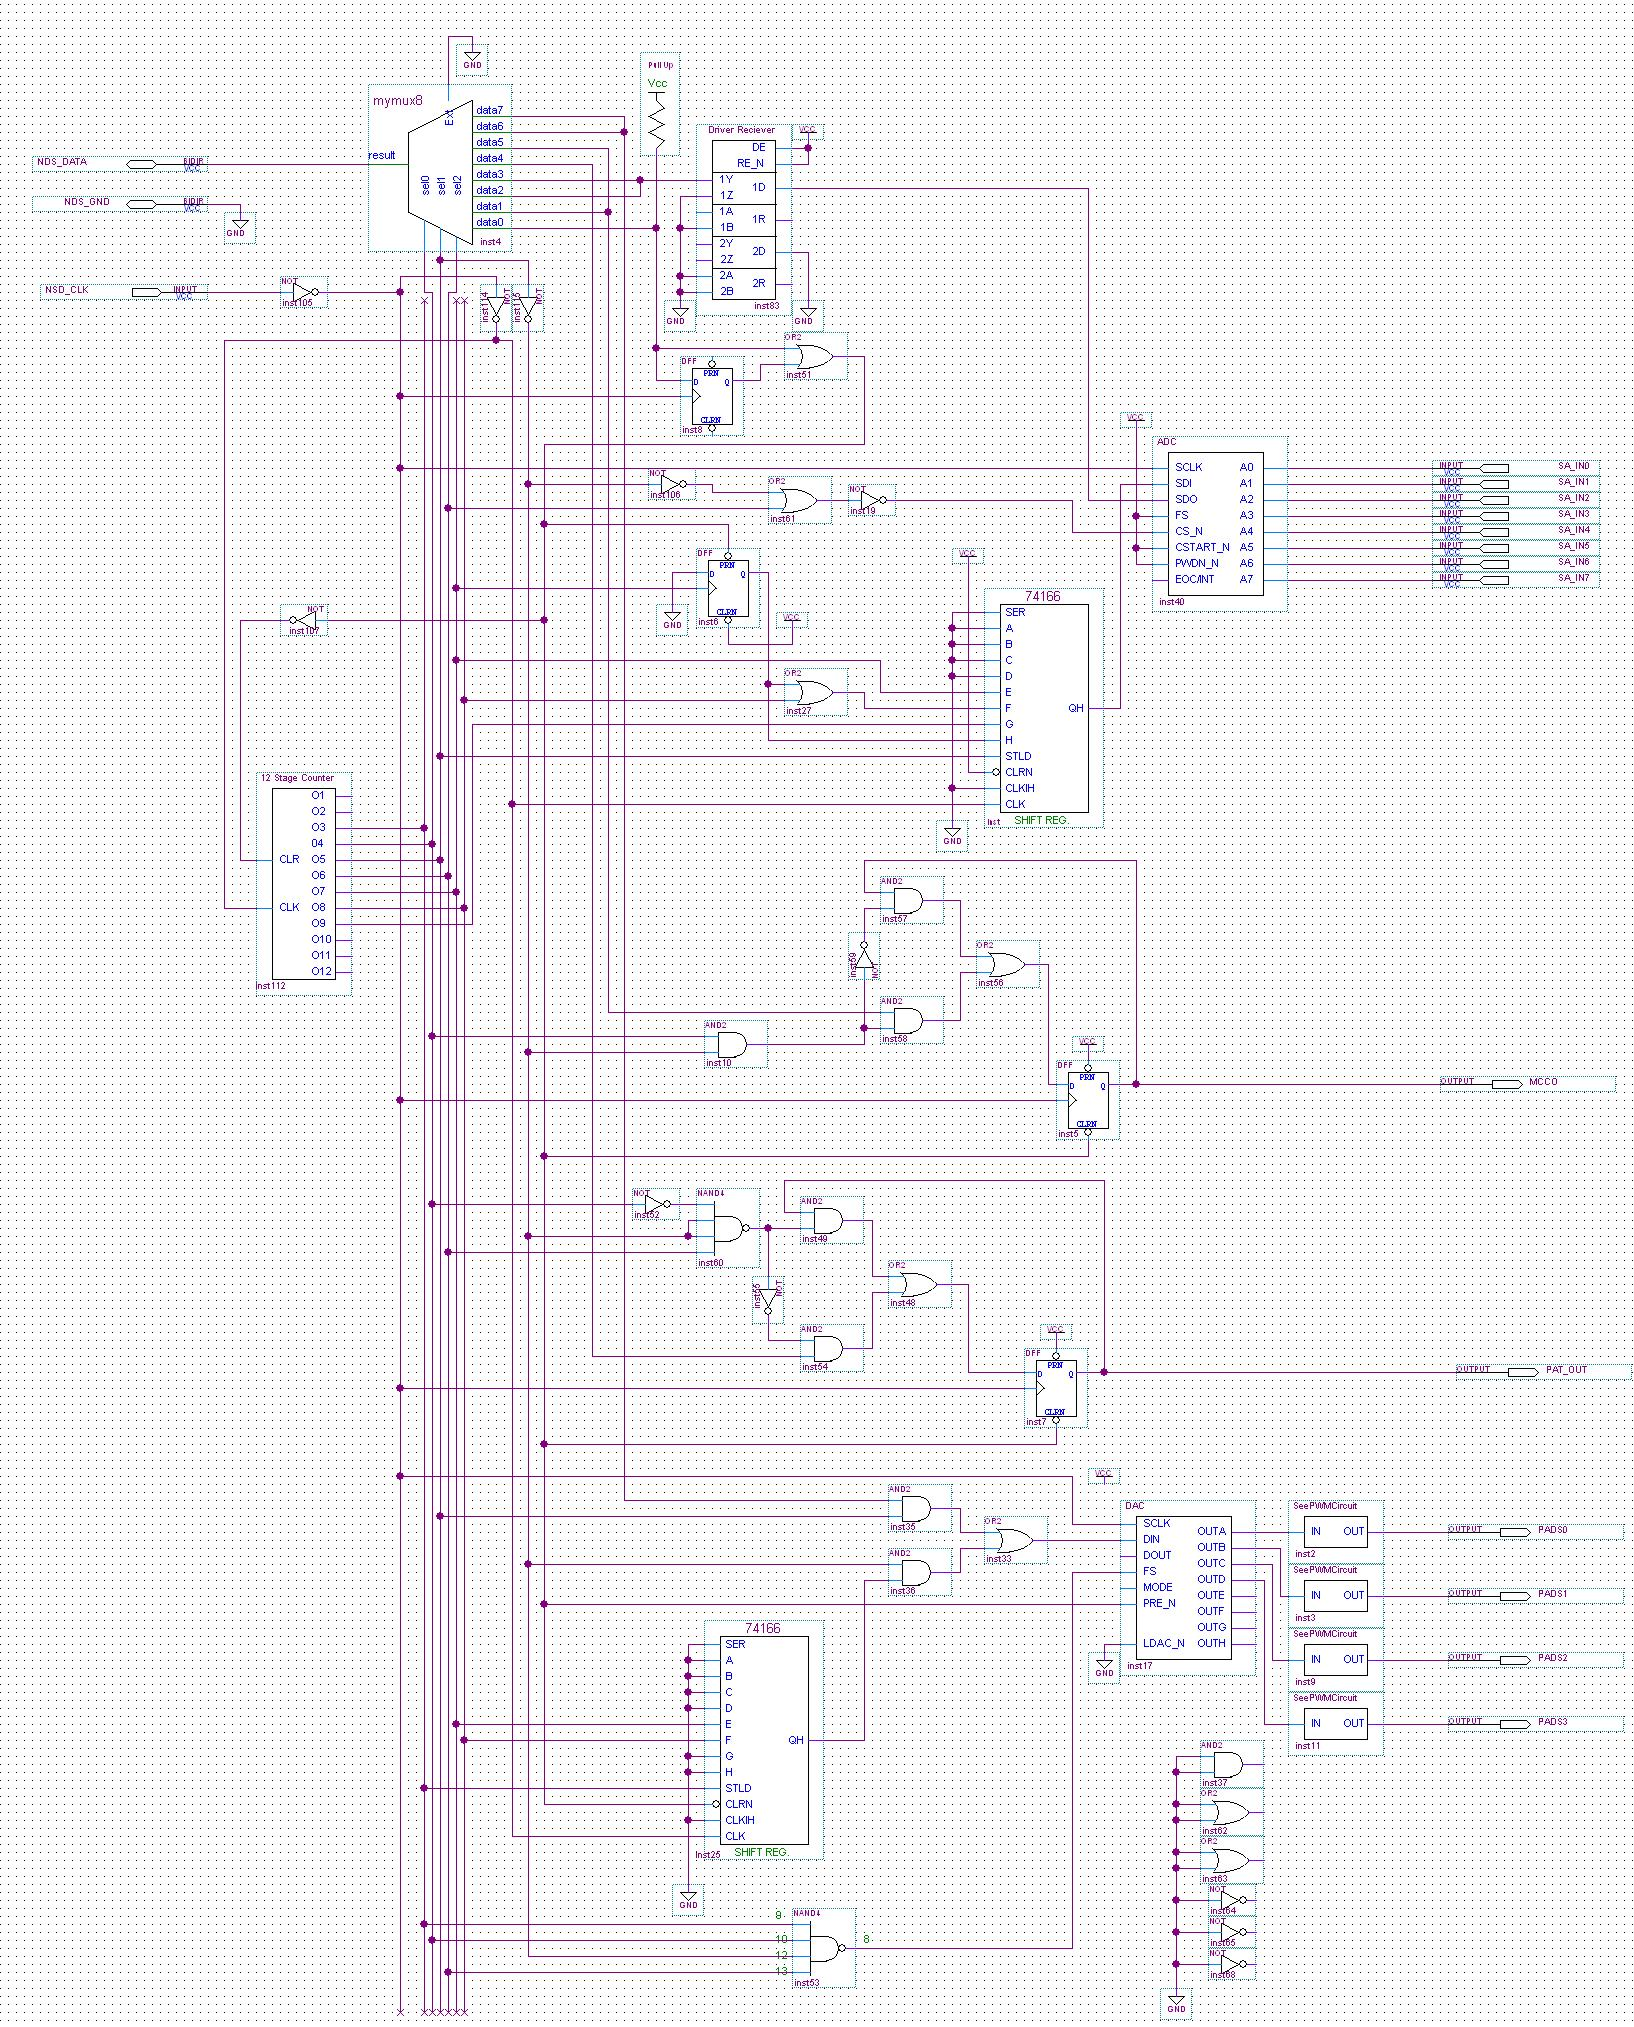 Edge Electrical Engineering Plan Inside Schematic